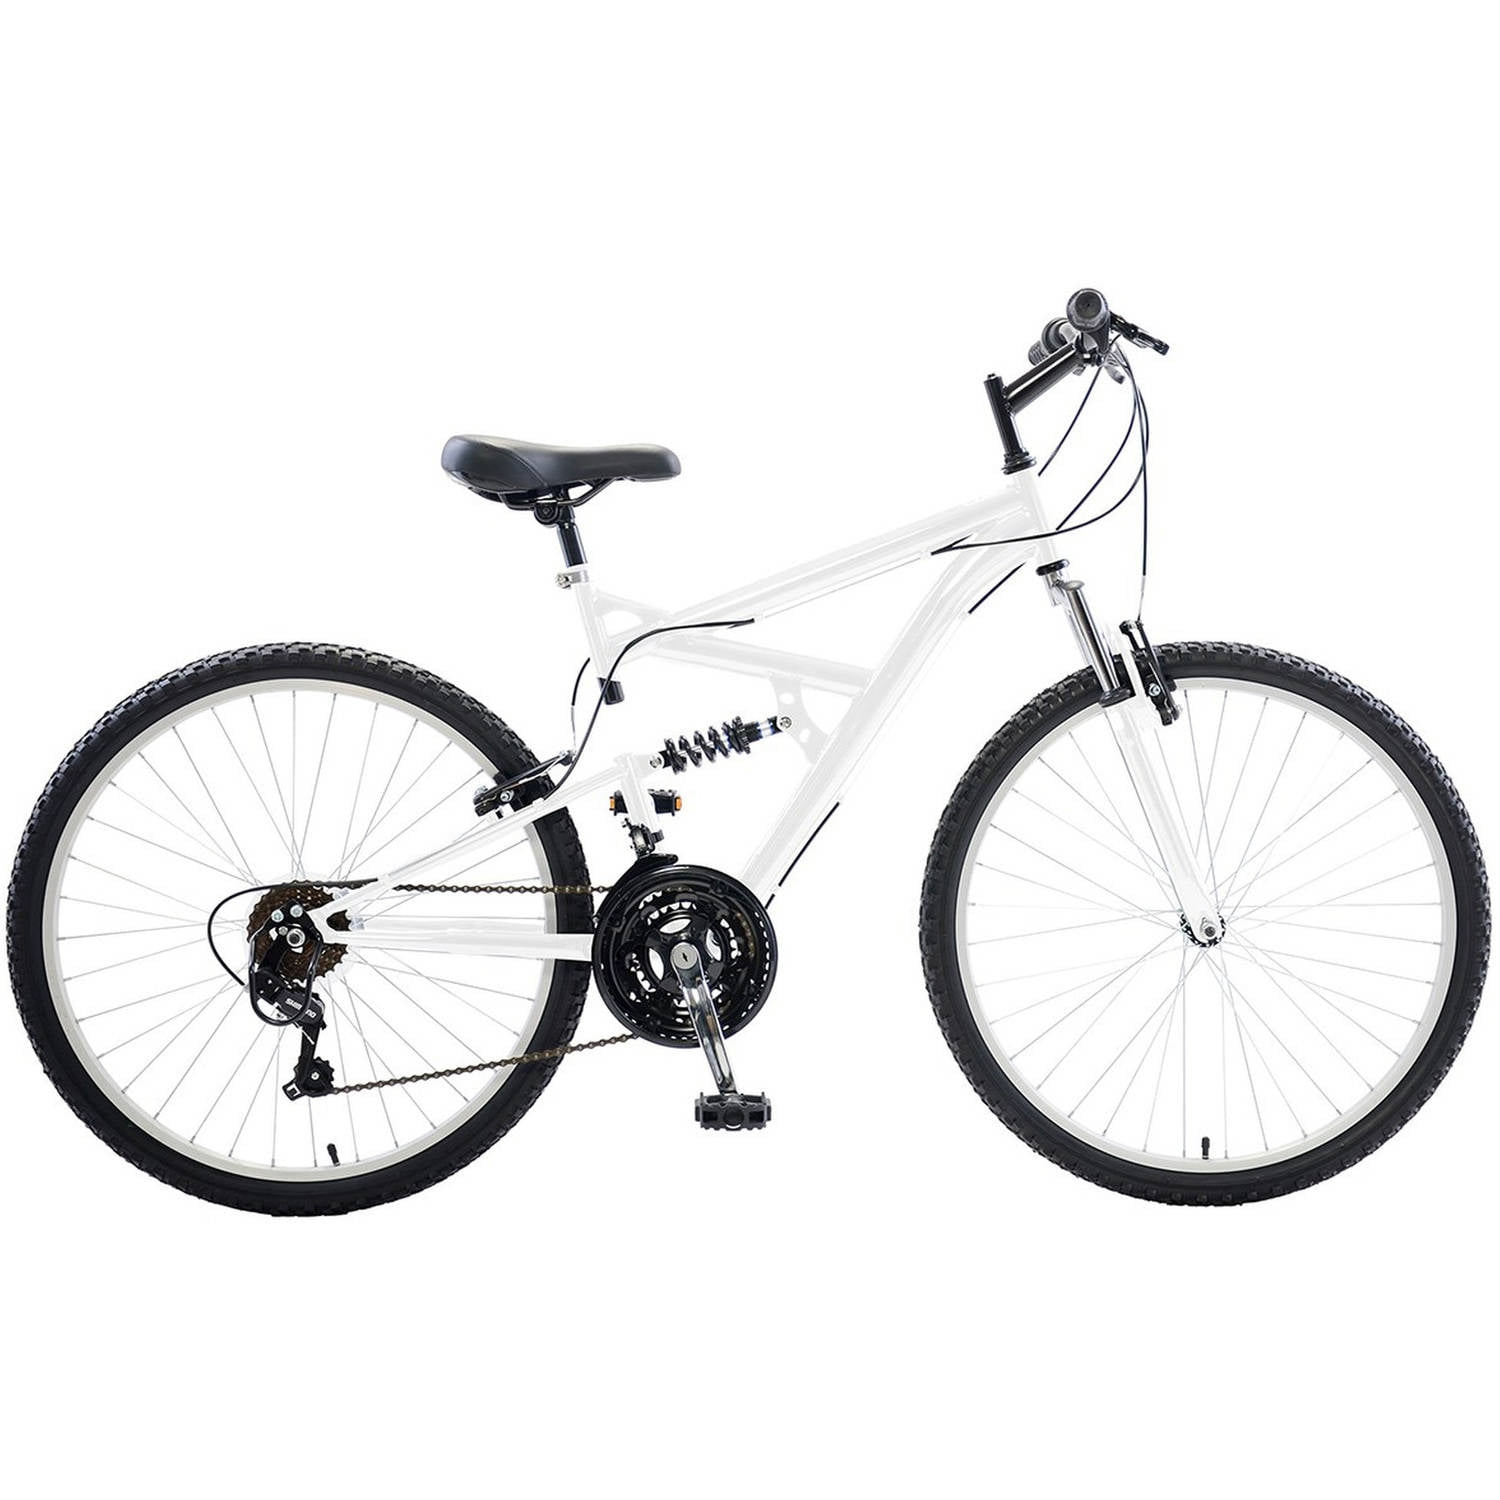 "Cycle Force Dual Suspension Mountain Bike, 26"" Wheels, 18"" Frame, Men's Bike by Cycle Force Group"